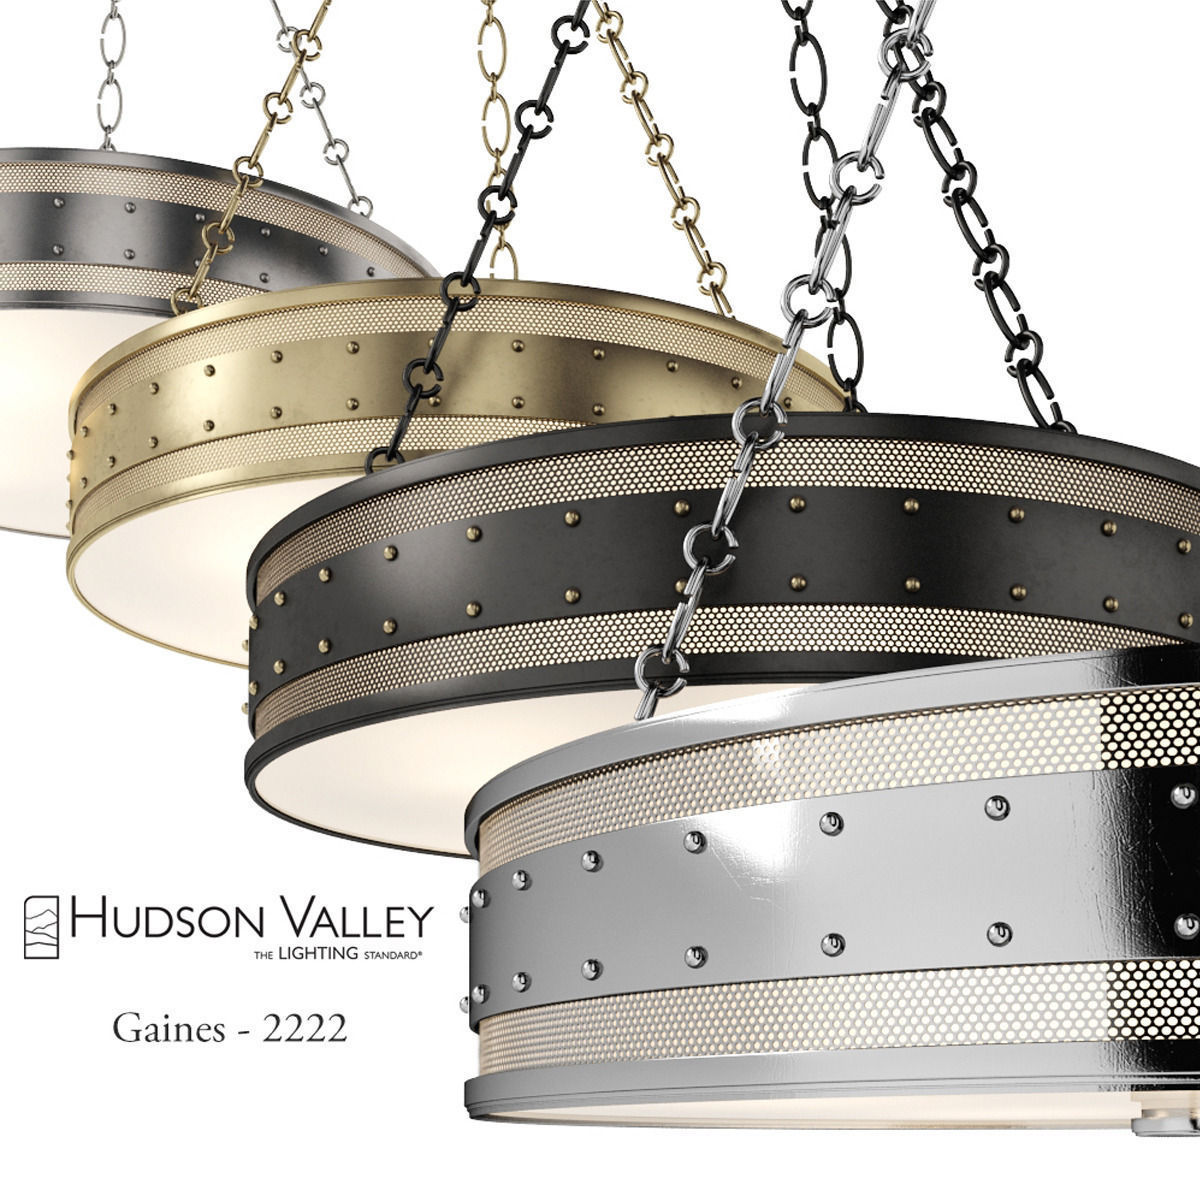 Chandelier hudson valley gaines 2222 3d cgtrader chandelier hudson valley gaines 2222 3d model max obj fbx unitypackage 1 arubaitofo Choice Image